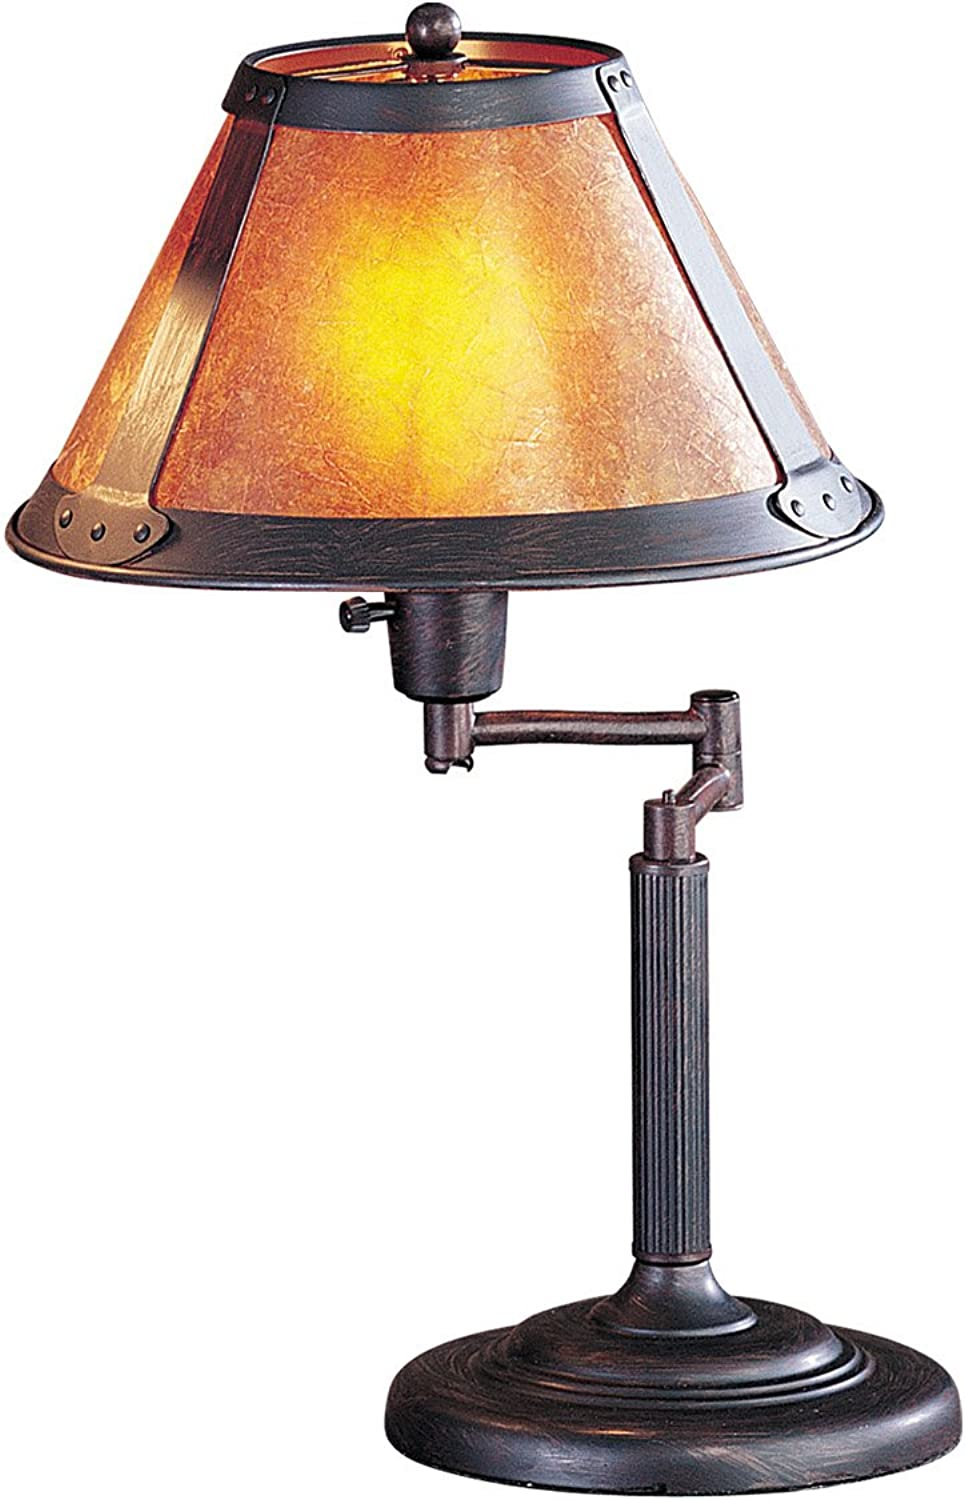 Cal Lighting BO-462 Table Lamp with Mica Glass Shades, Rust Finish, 18  x 11.5  x 11.5 ,